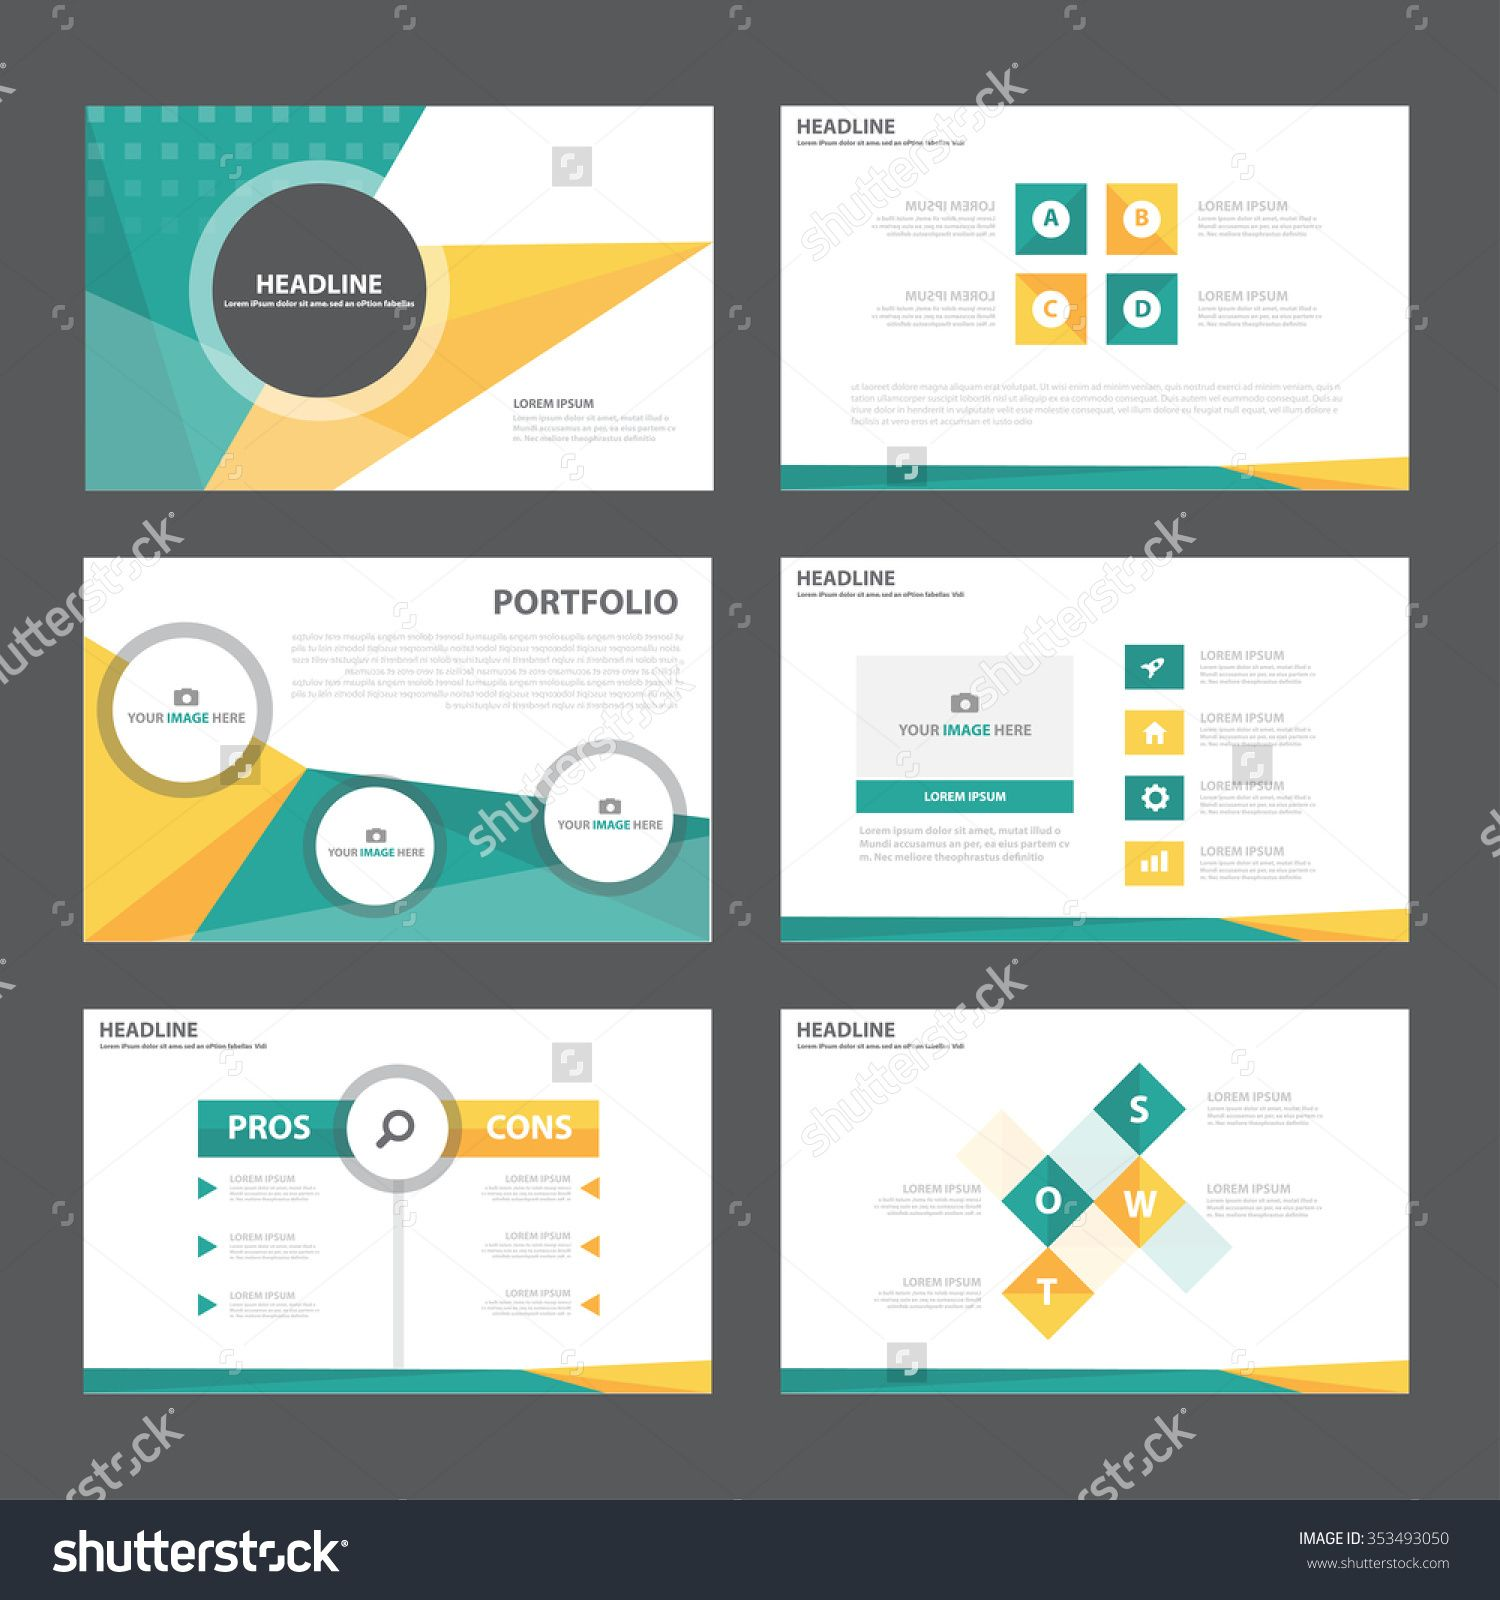 Green Orange Presentation Template Infographic Elements Flat